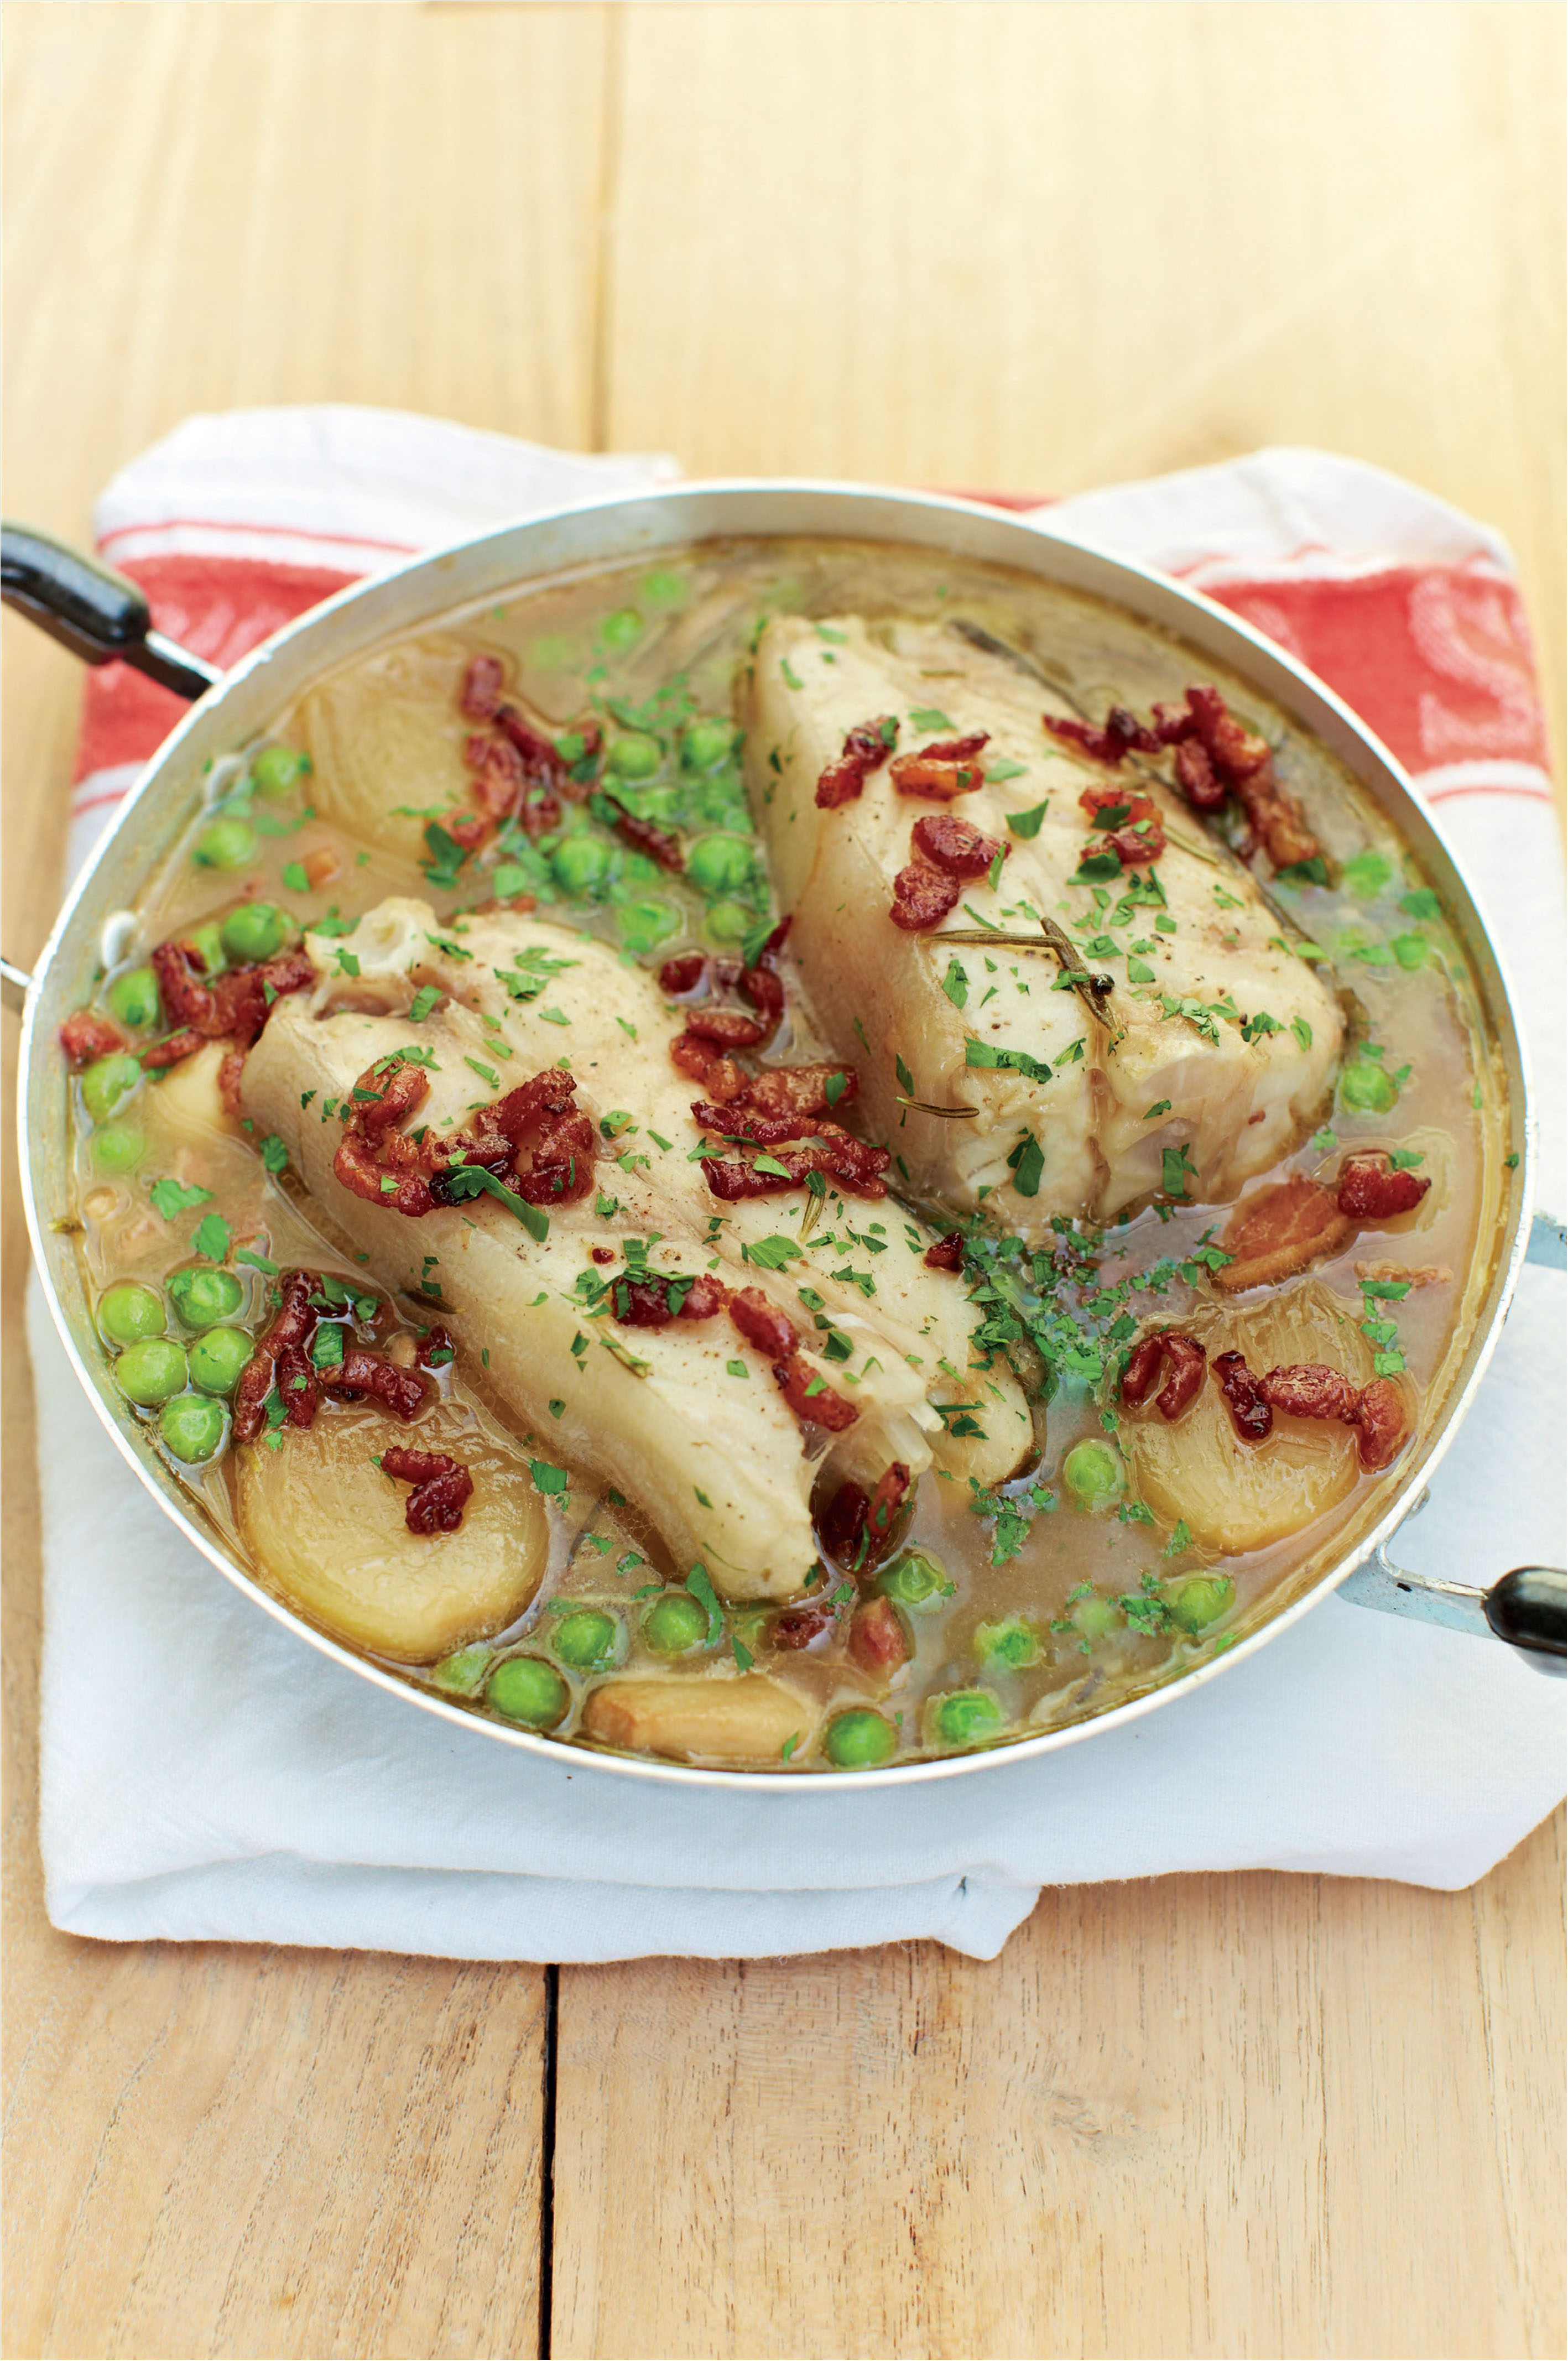 Braised turbot in beer with bacon, shallots and peas